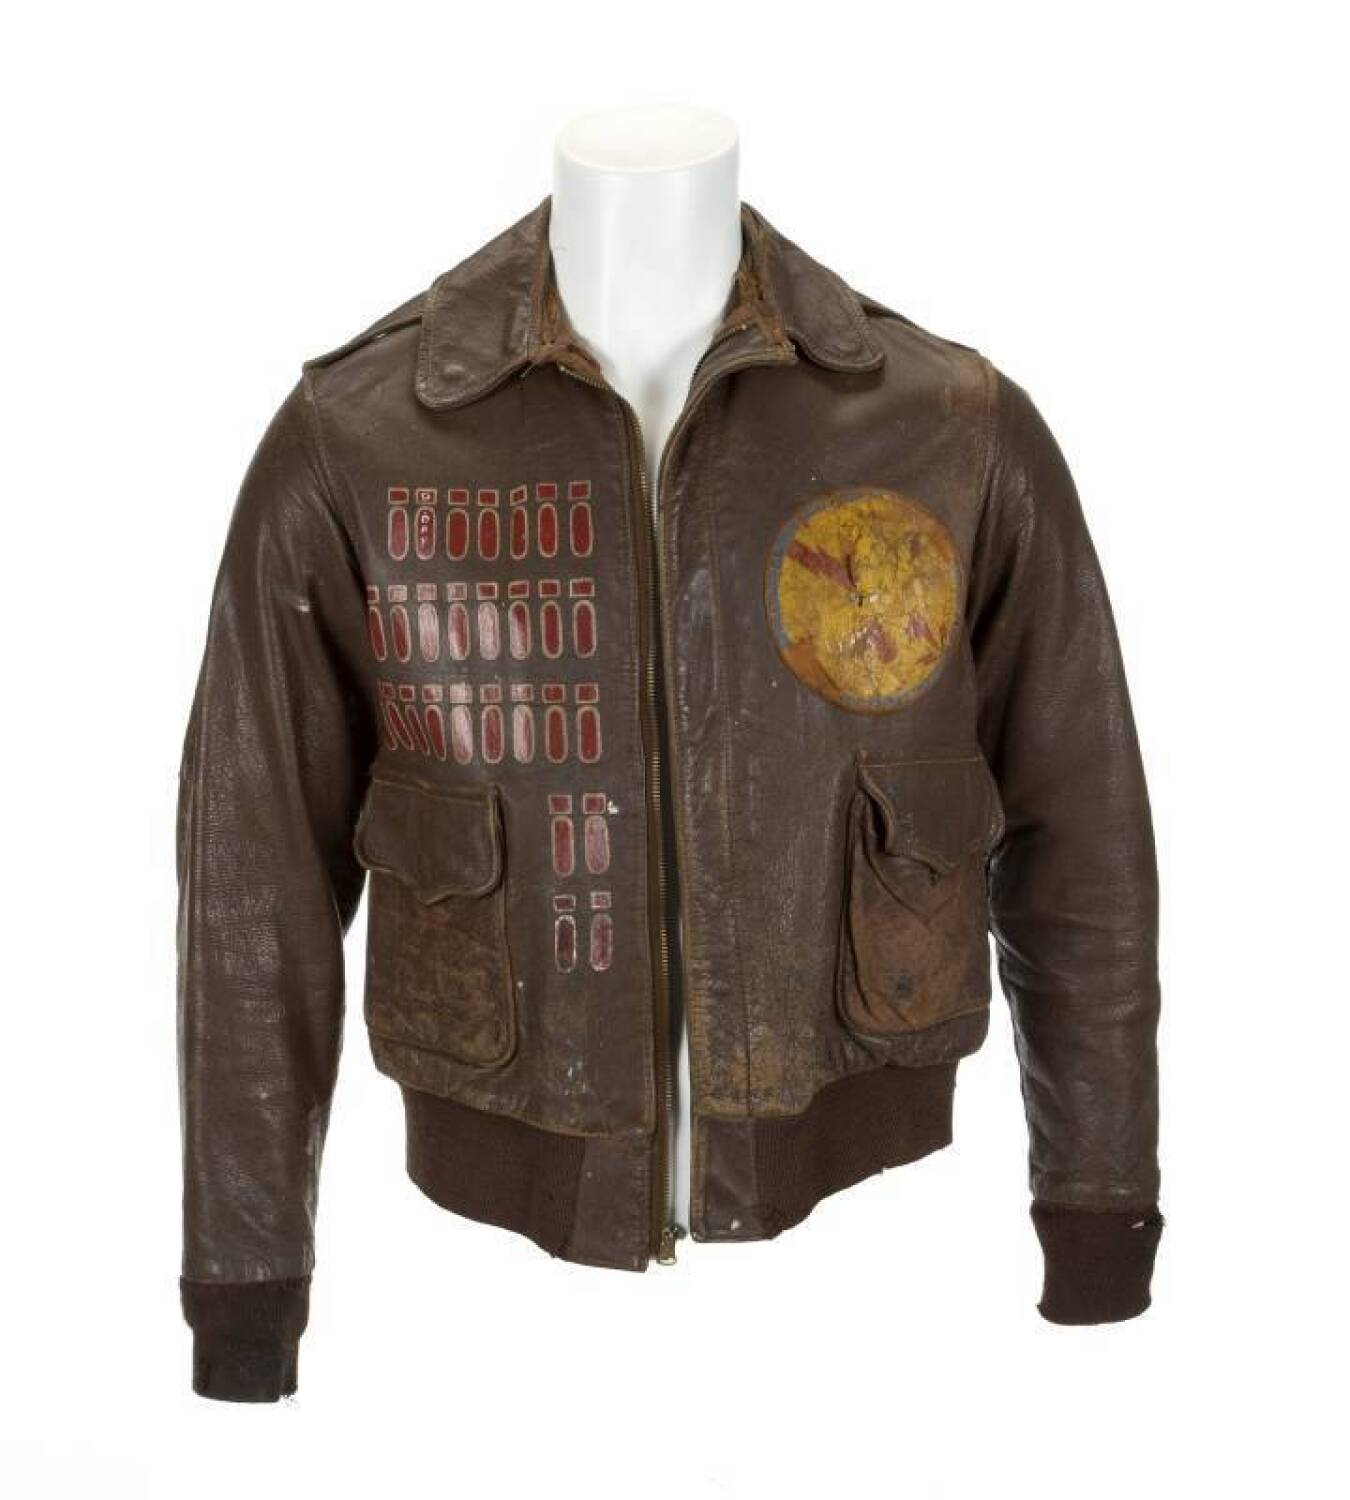 WORLD WAR II BOMBER JACKET - Current price: $2000